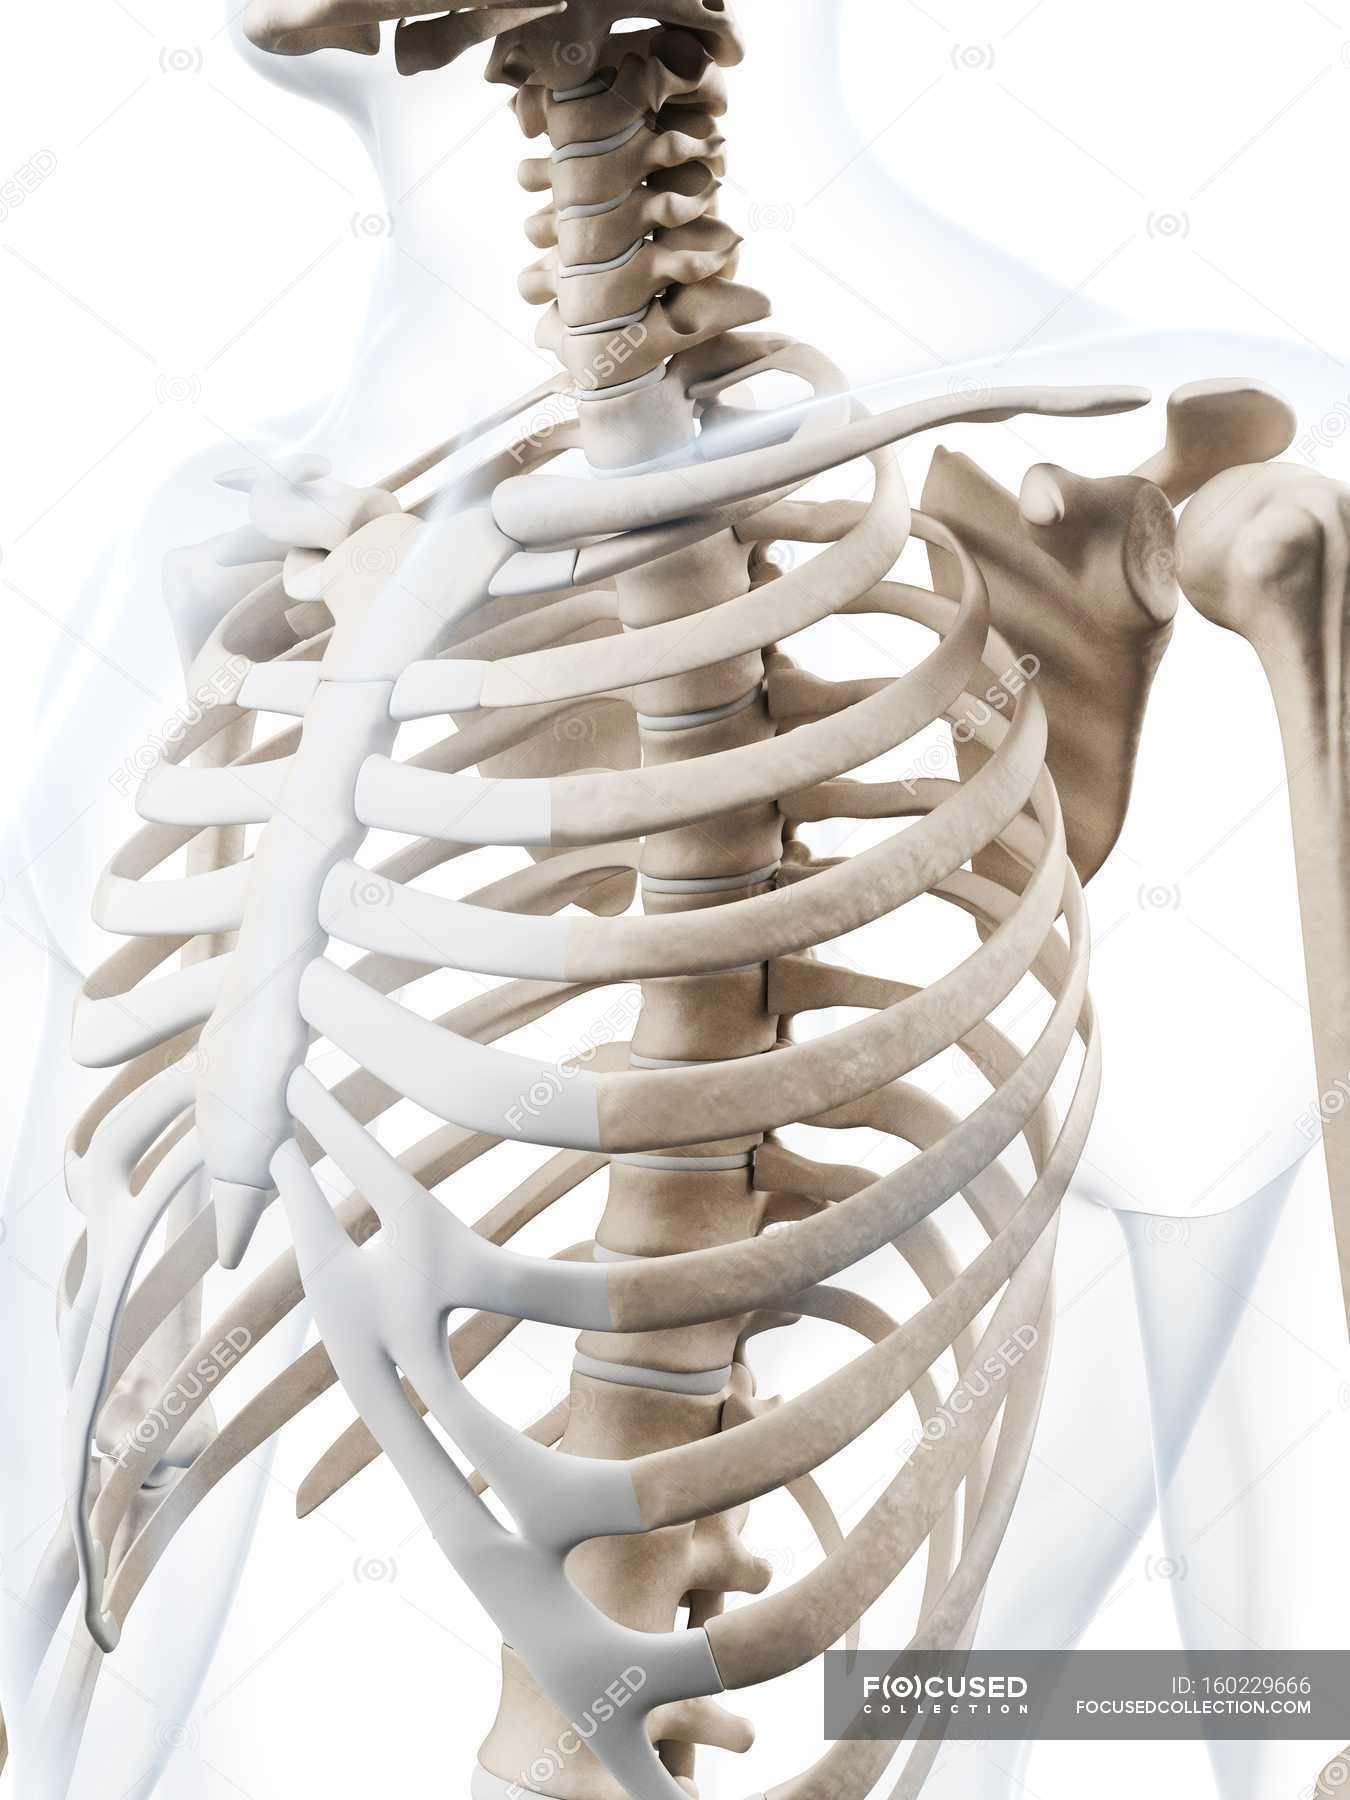 Human Rib Cage Anatomy Stock Photo 160229666